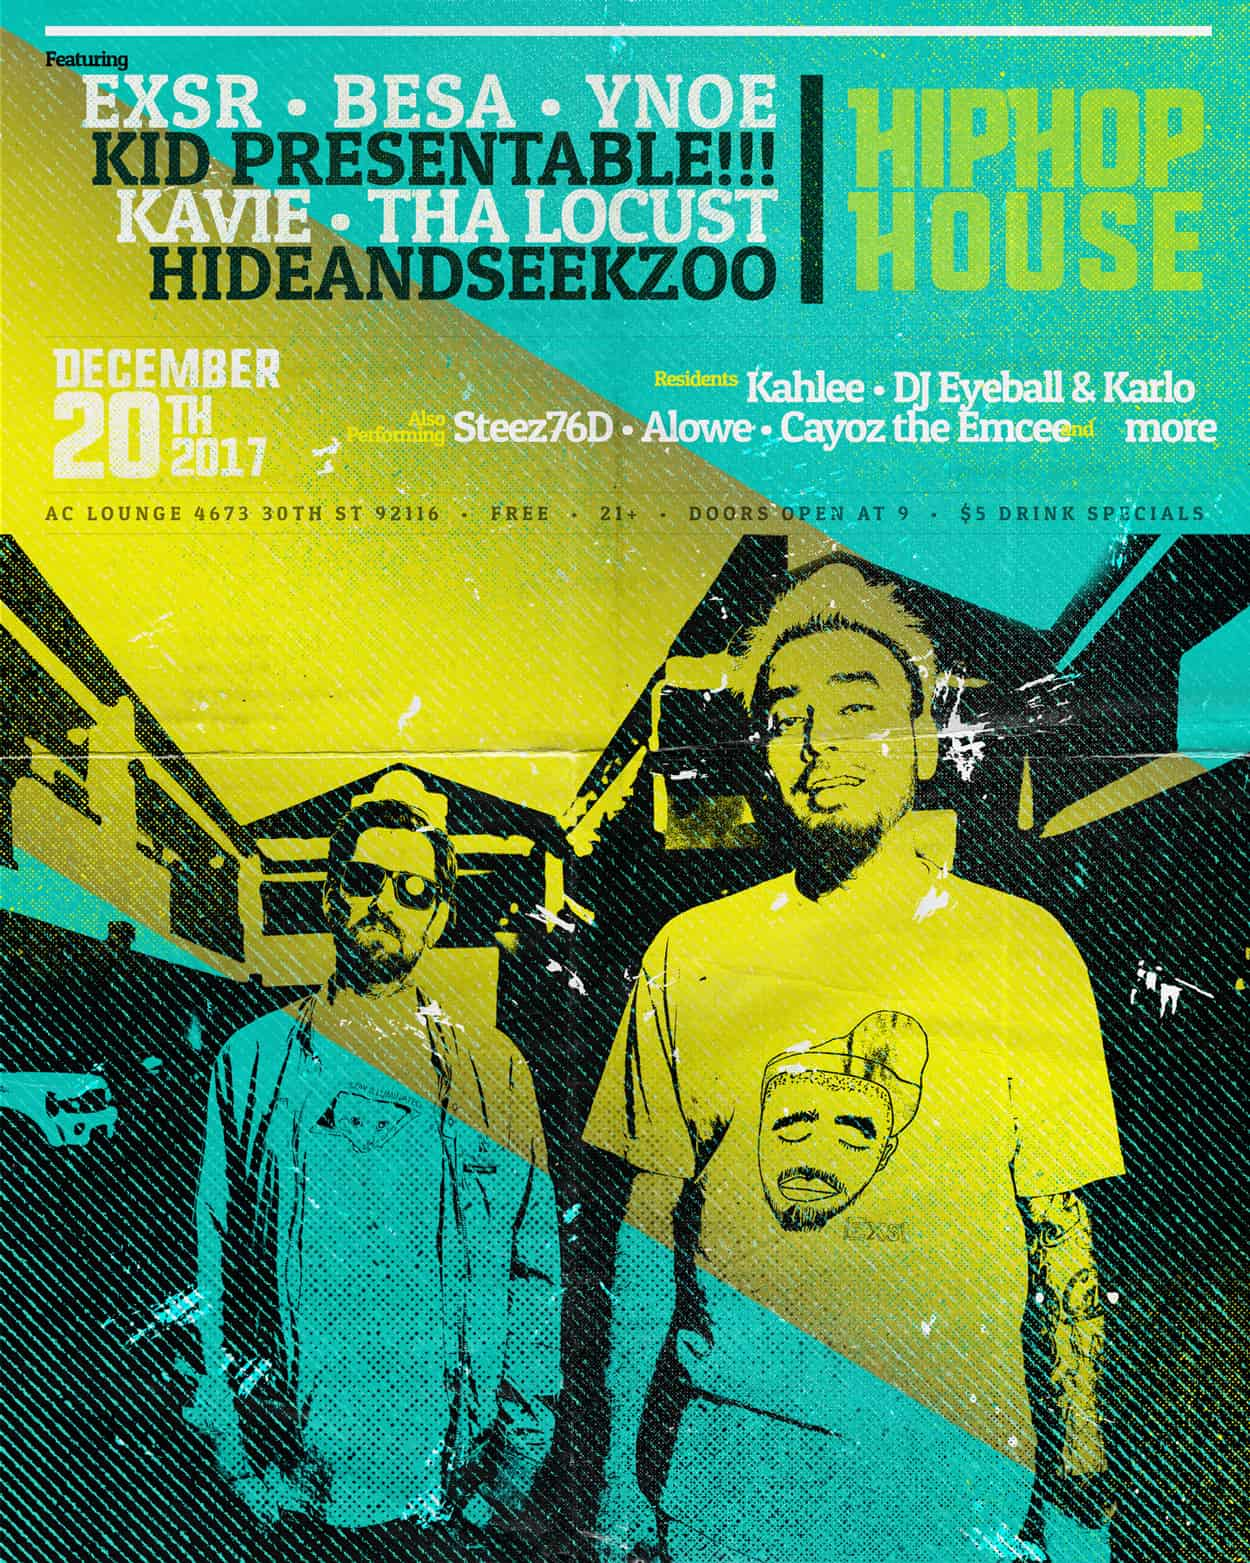 stay ill - hip hop house - flyer design